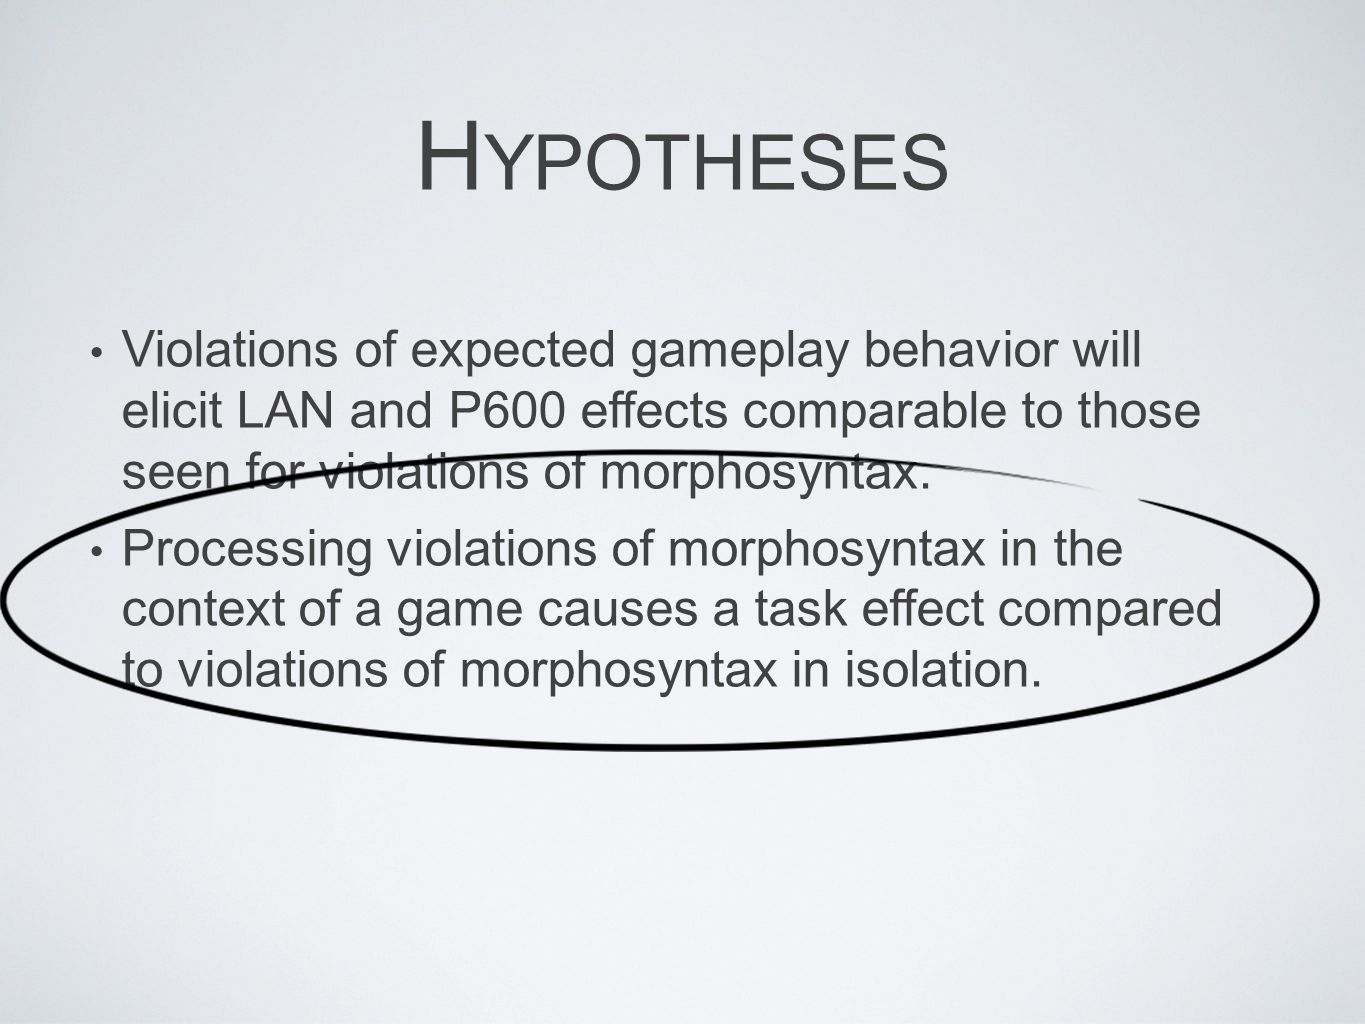 Hypotheses Violations of expected gameplay behavior will elicit LAN and P600 effects comparable to those seen for violations of morphosyntax.